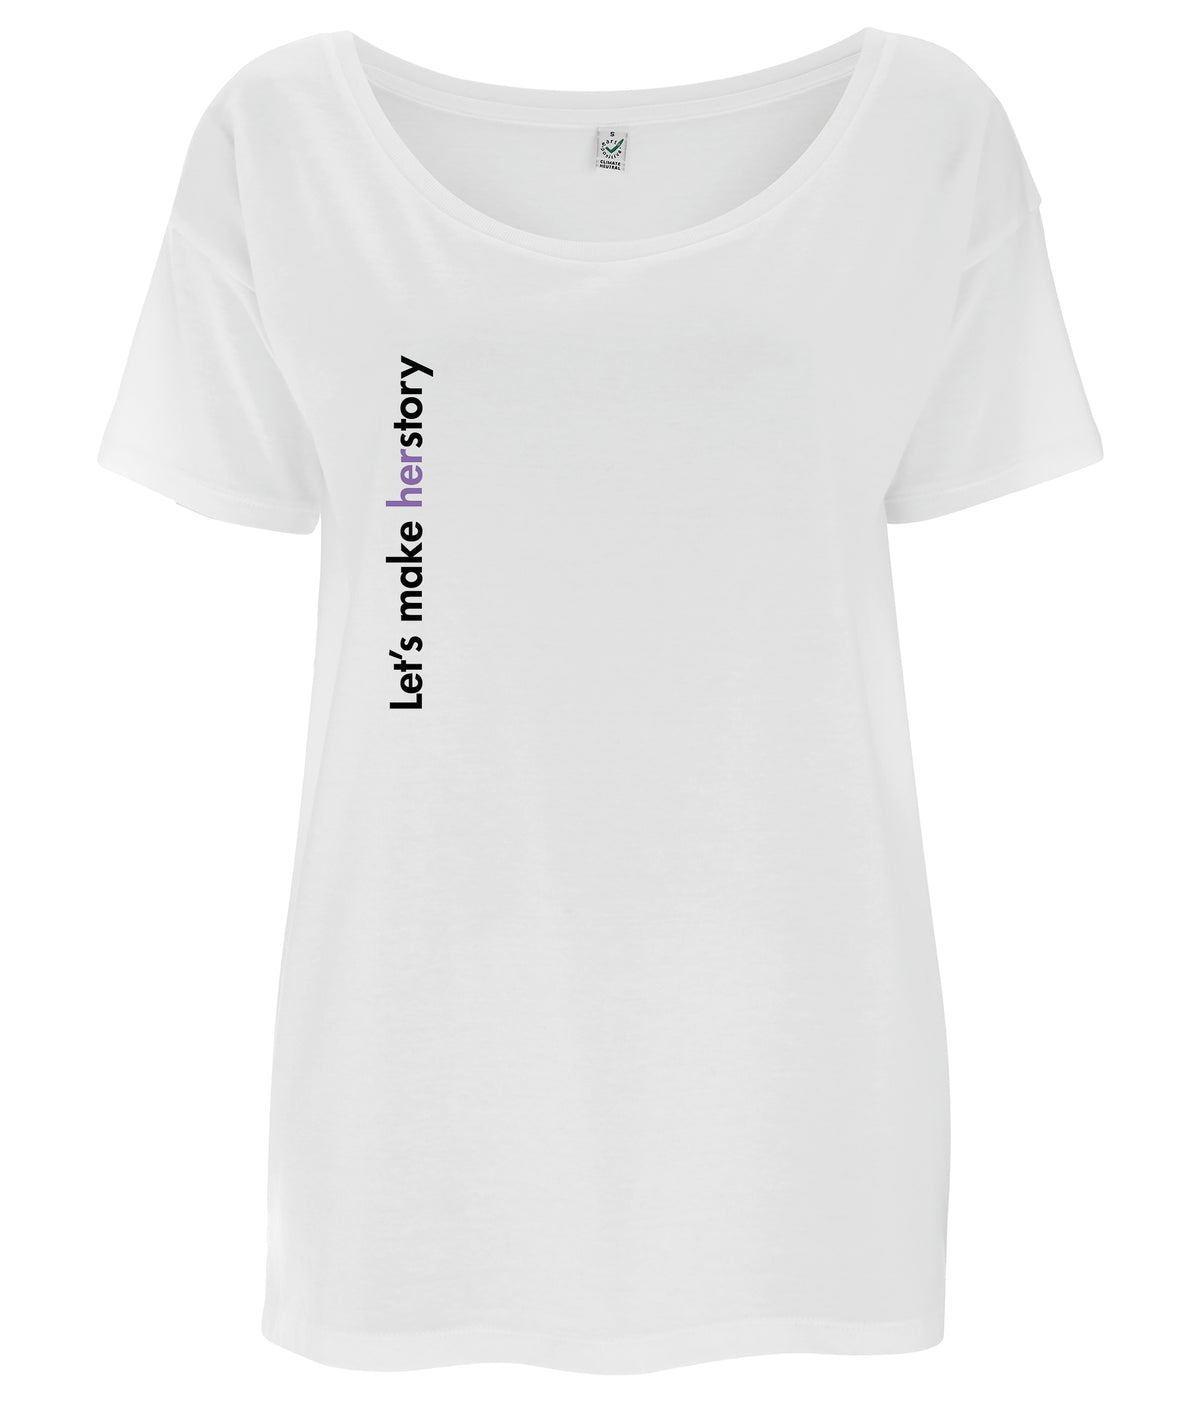 Let's Make Herstory Tencel Blend Oversized Feminist T Shirt White